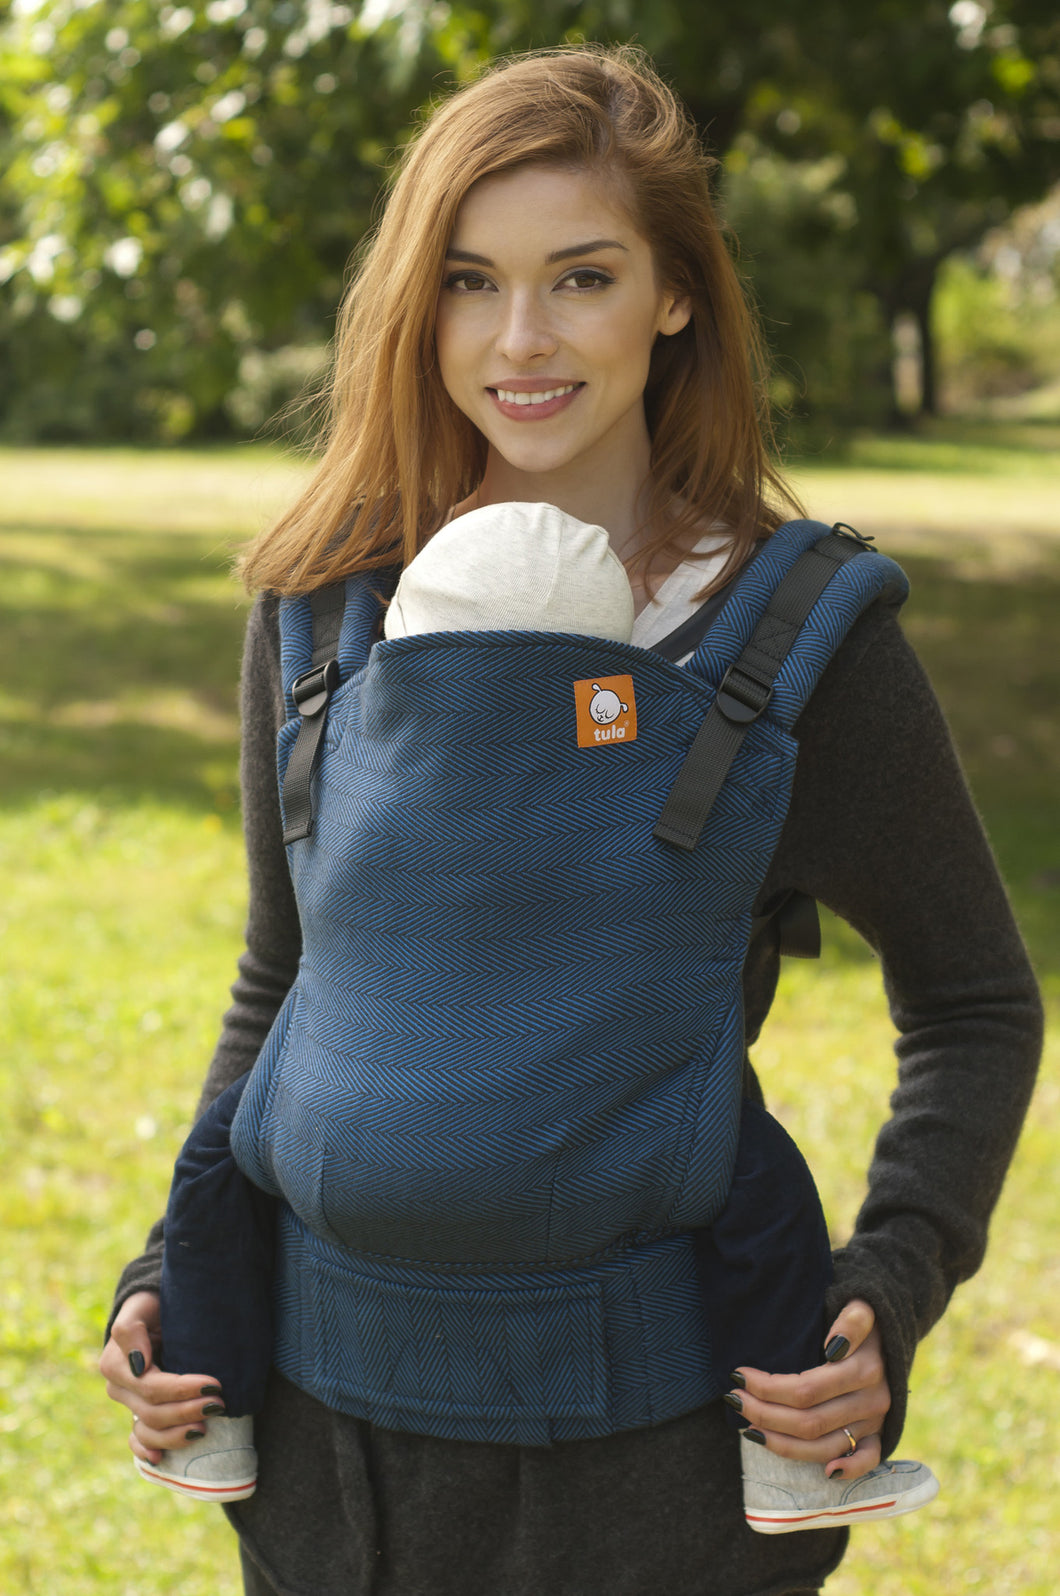 Half Standard WC Carrier - Lisca Achat - Baby Tula